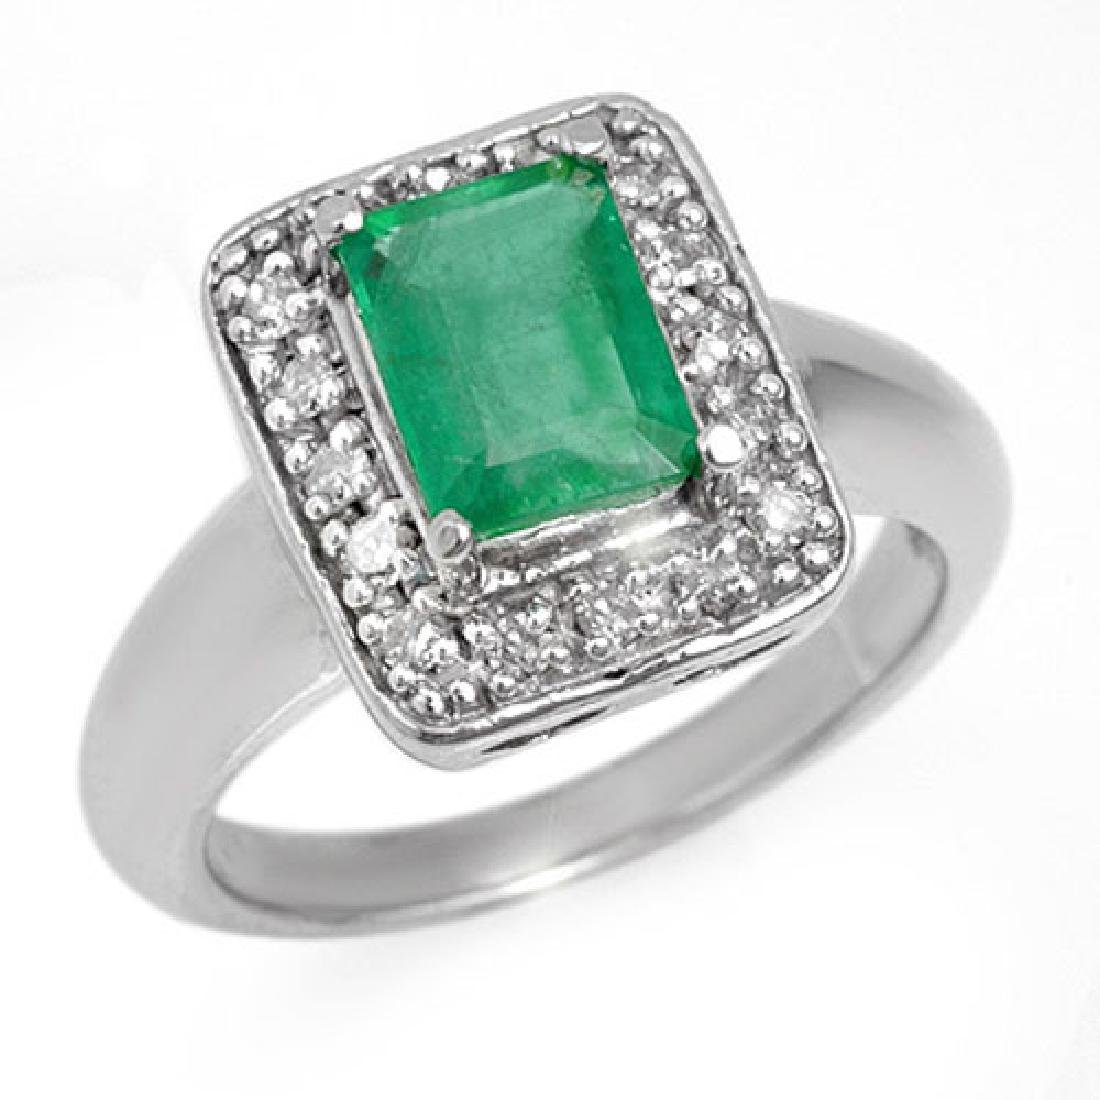 2.03 CTW Emerald & Diamond Ring 18K White Gold